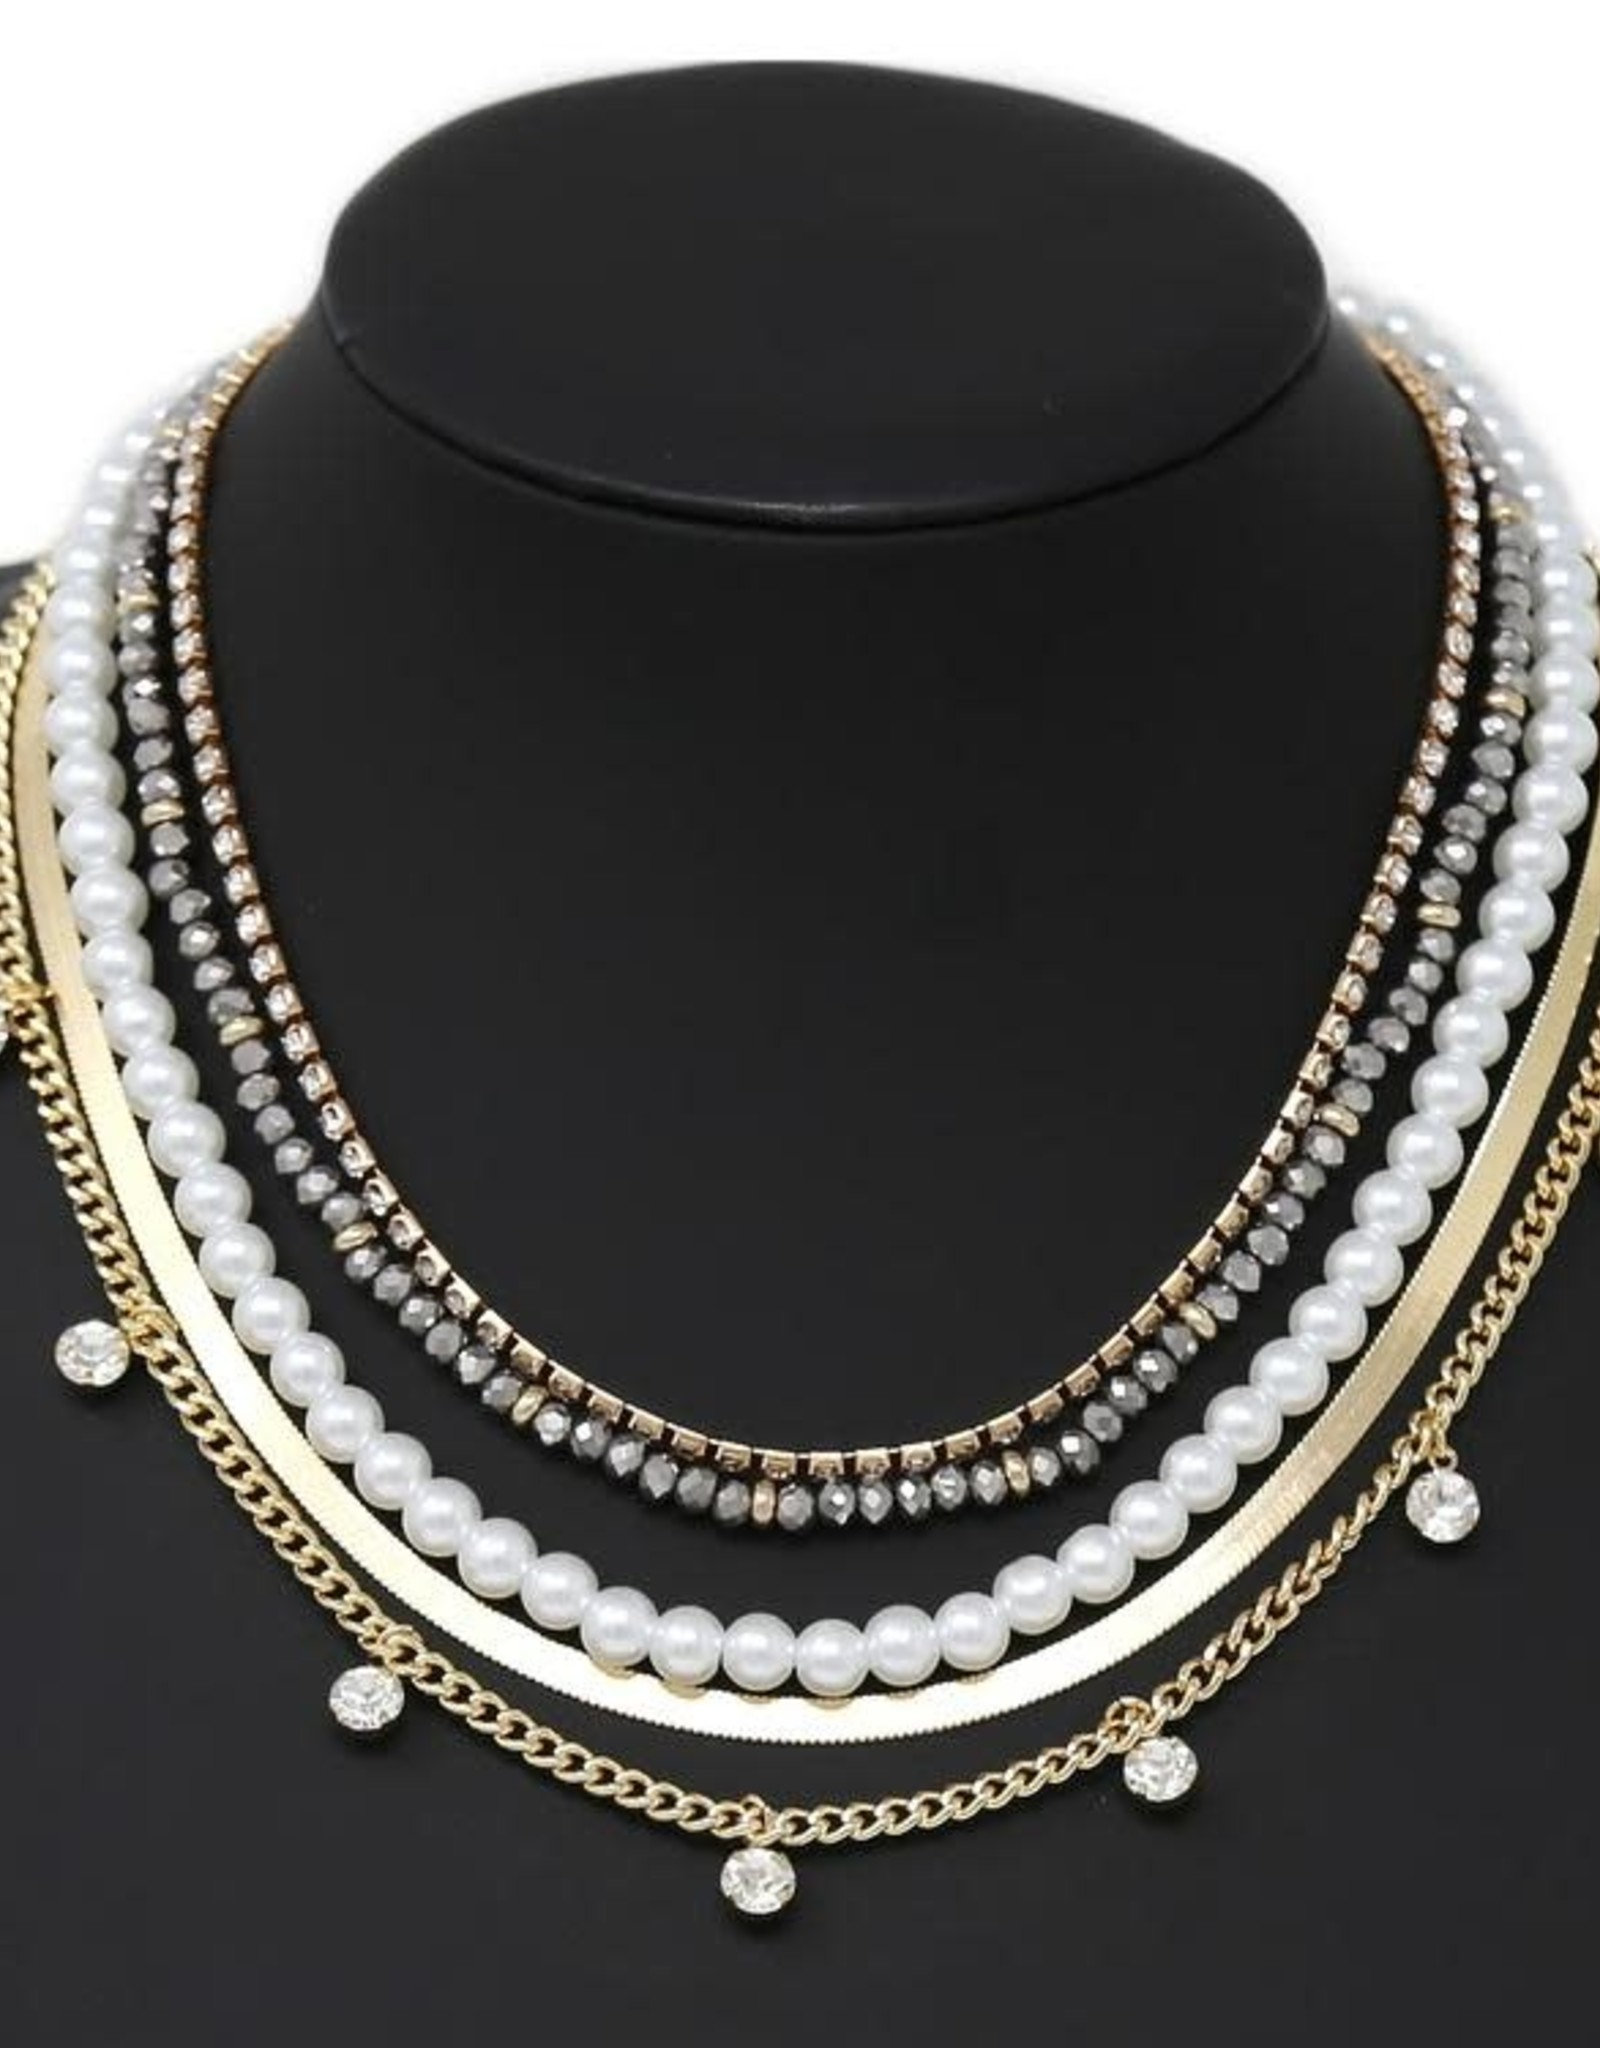 Pearl & Glass Beaded Layered Statement Necklace